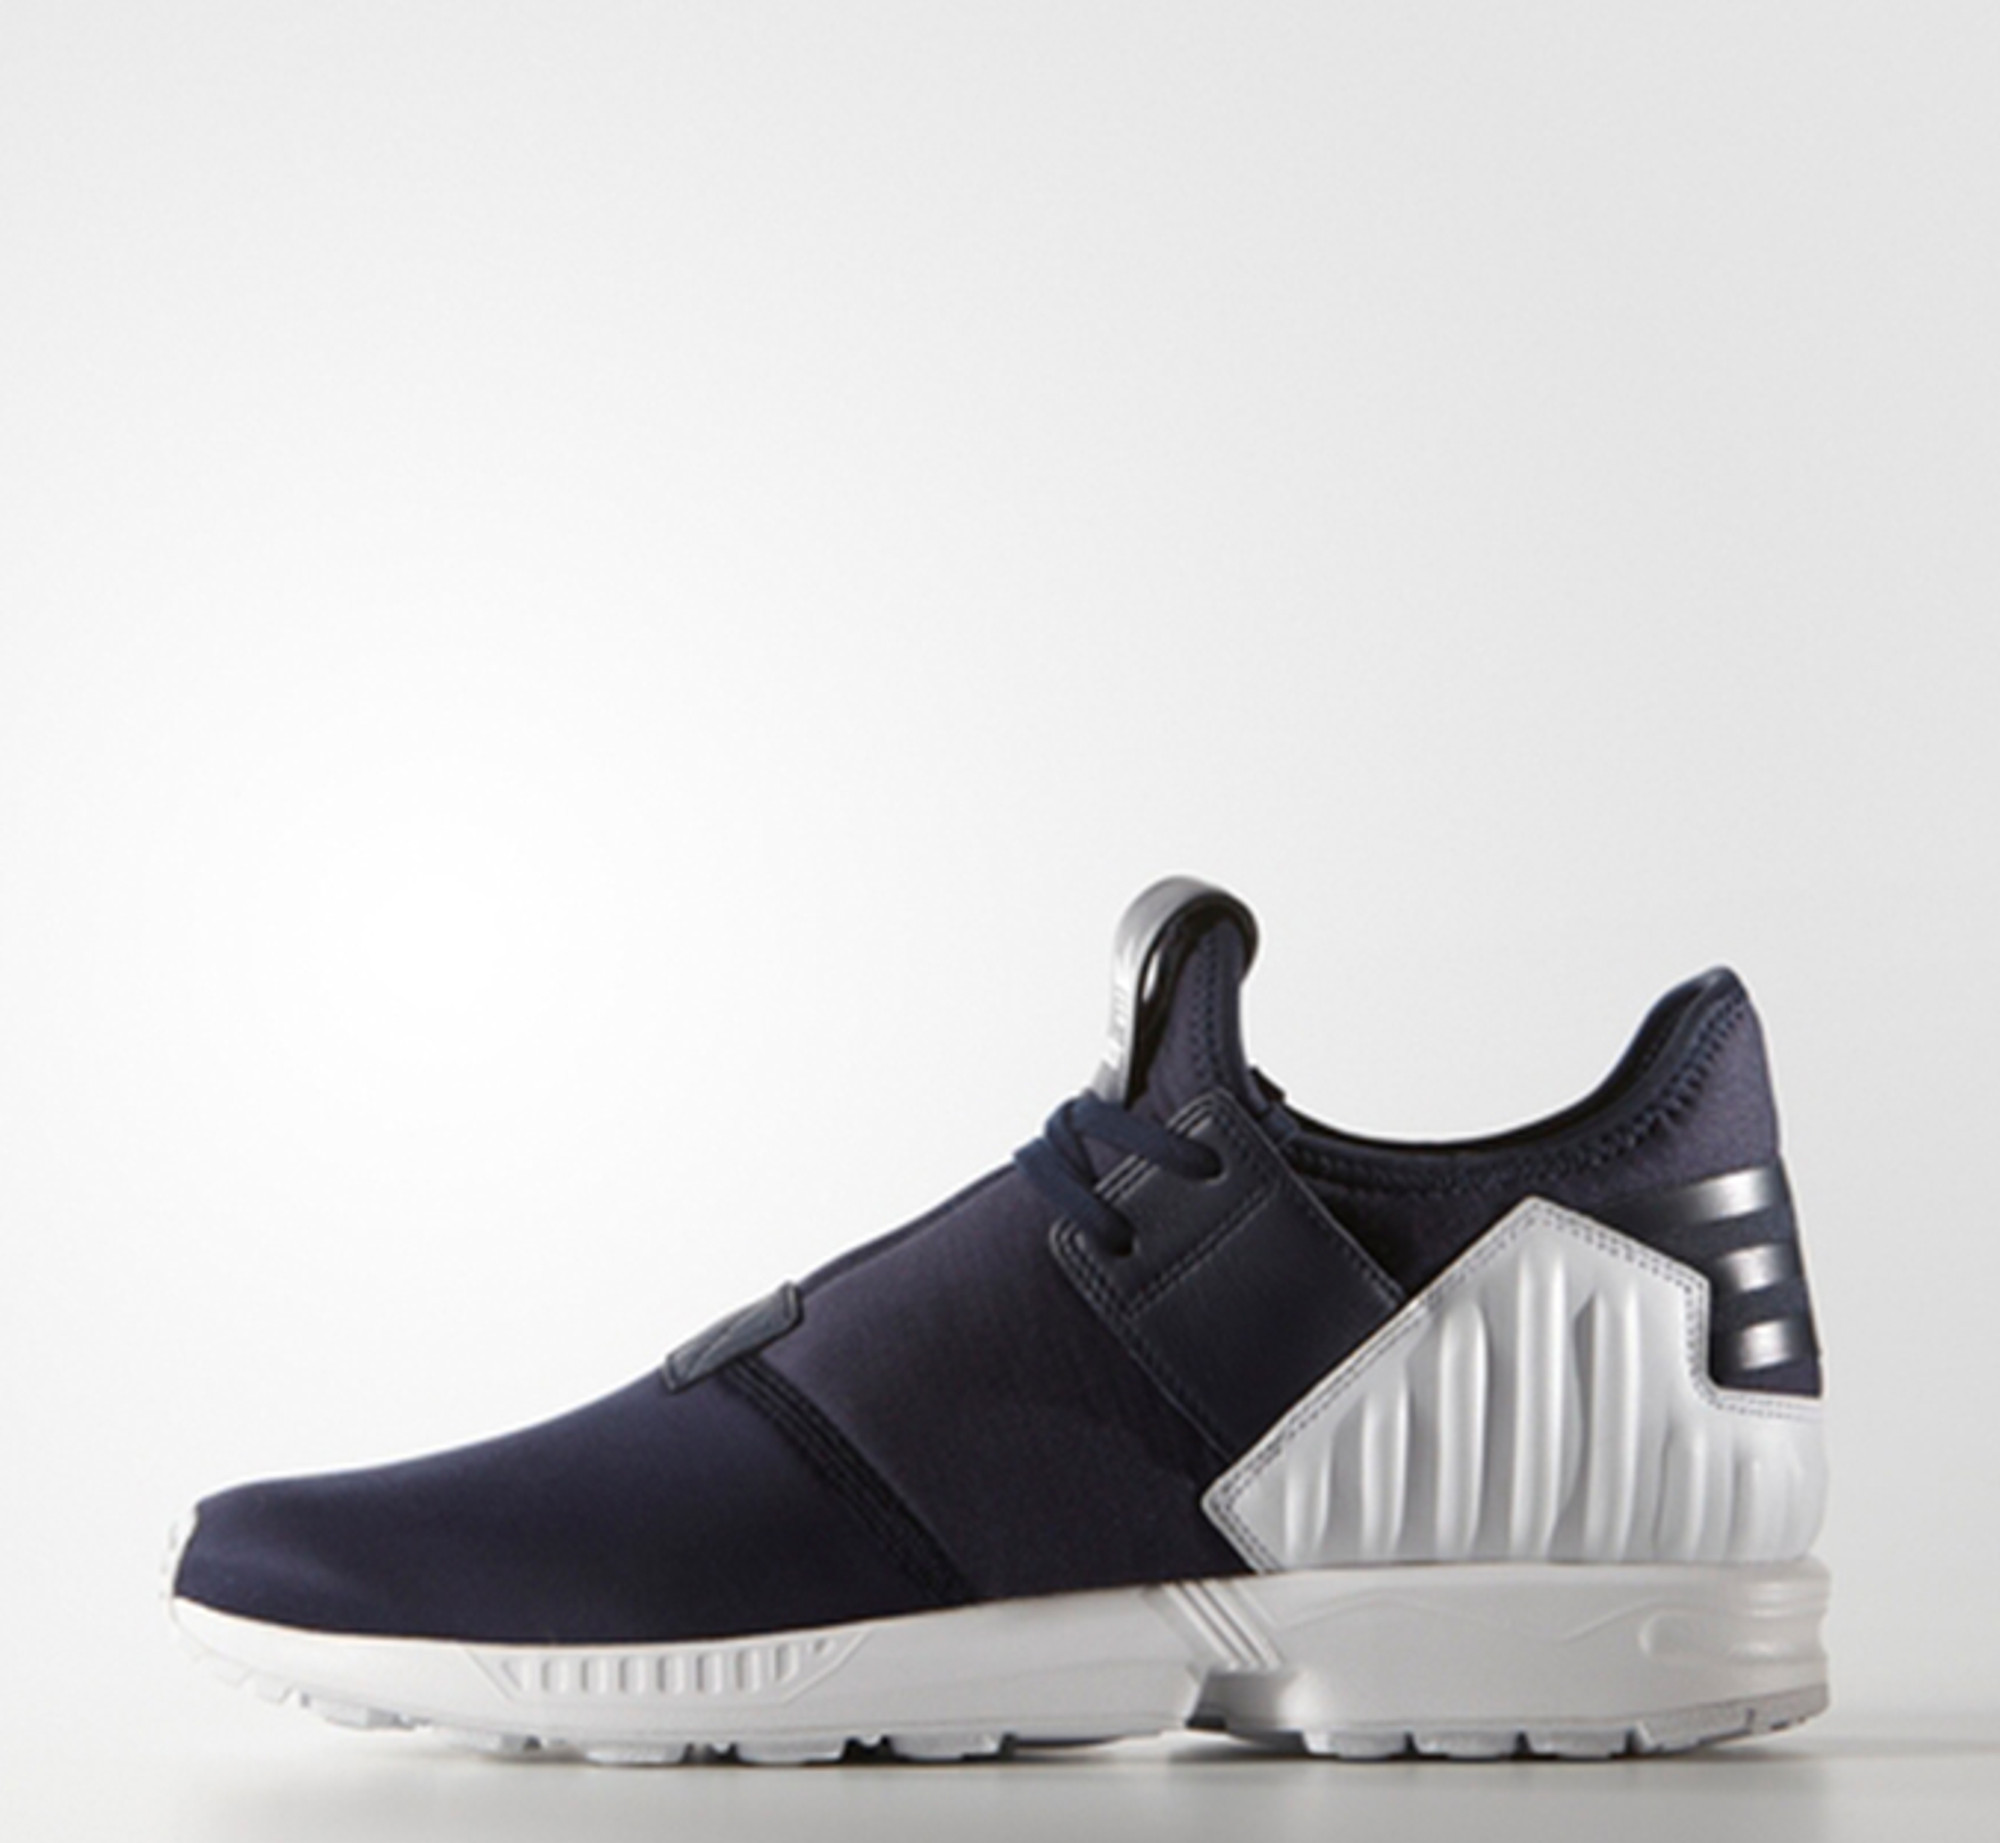 e11a7a1e90845 adidas ZX Flux Plus S79061 - Sunlight Station